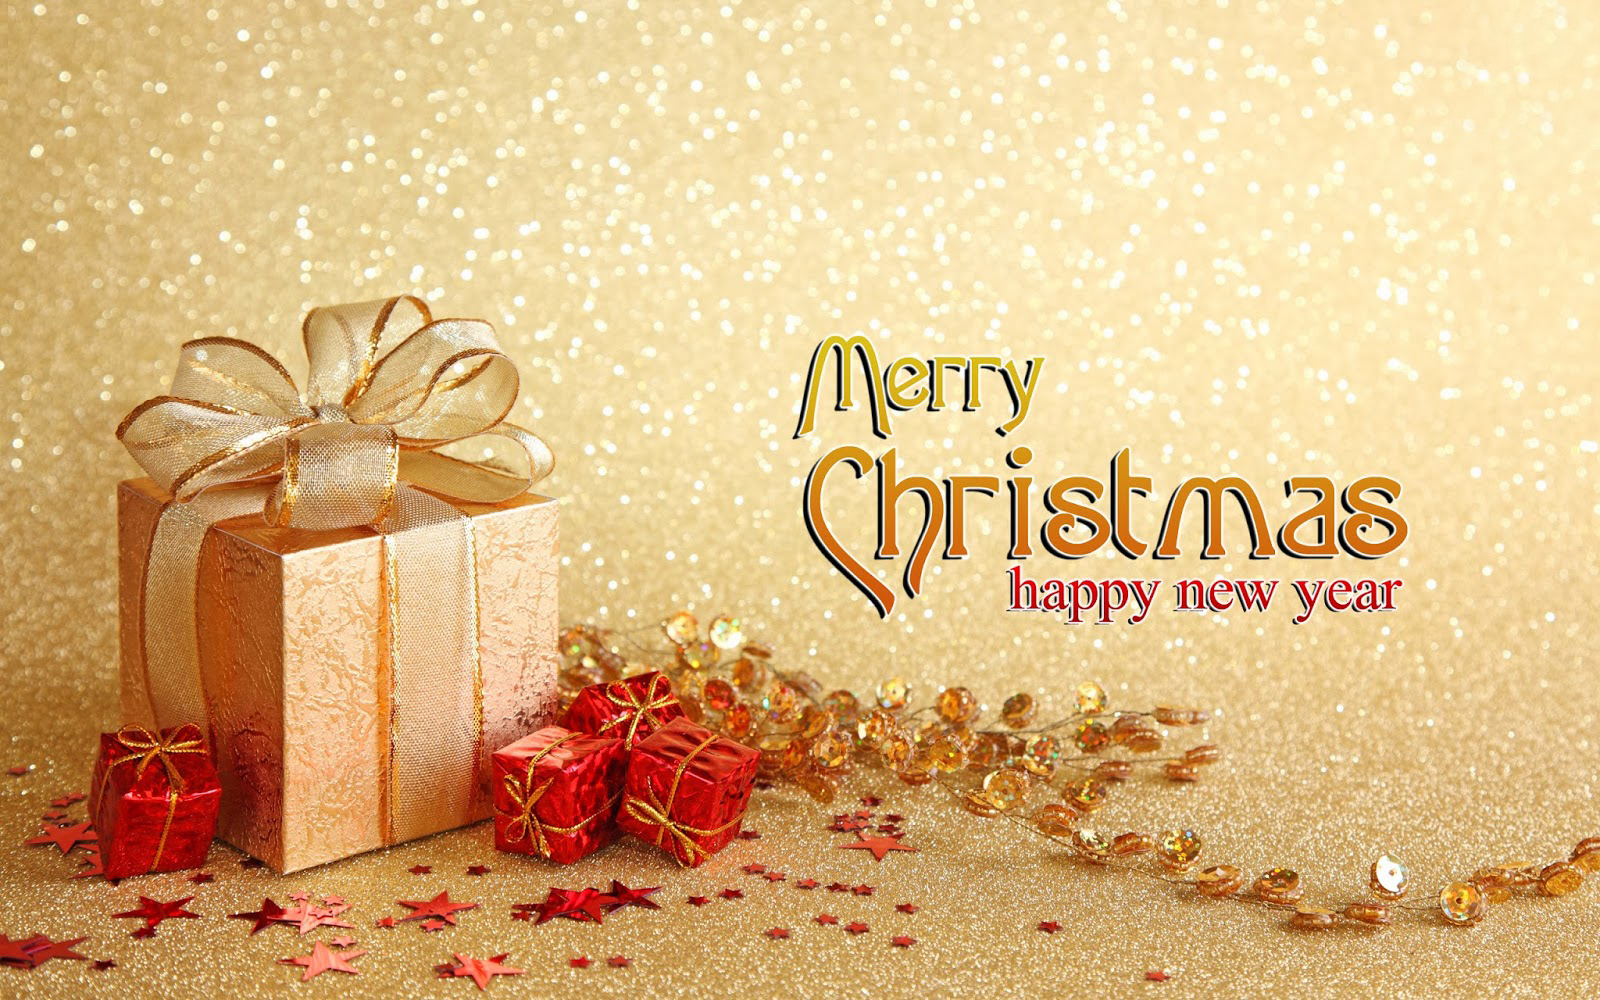 happy new year christmas days gifts cute photos